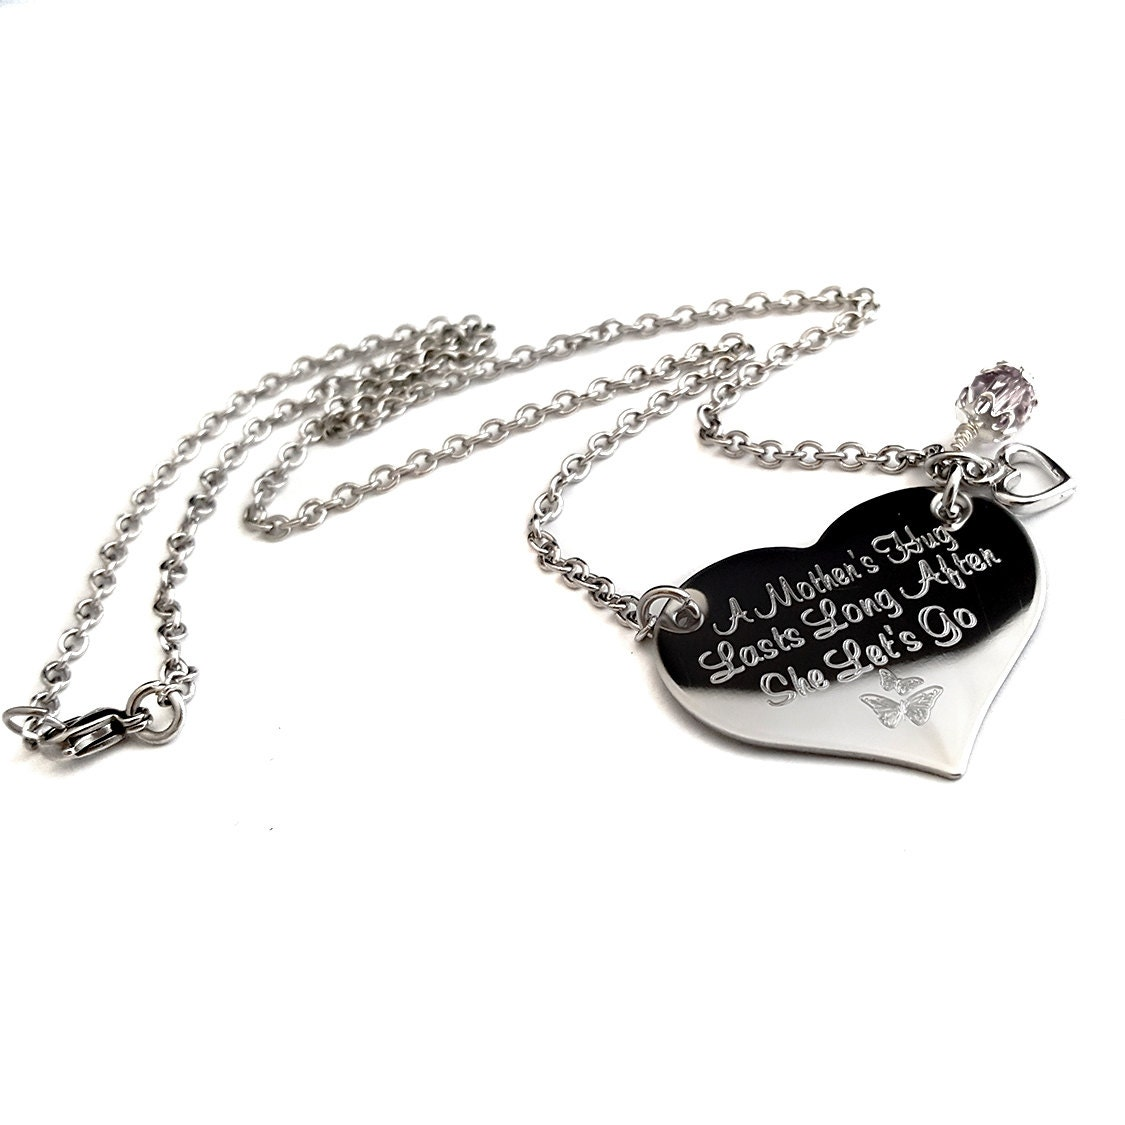 personalized mothers necklace mother 39 s day necklace. Black Bedroom Furniture Sets. Home Design Ideas